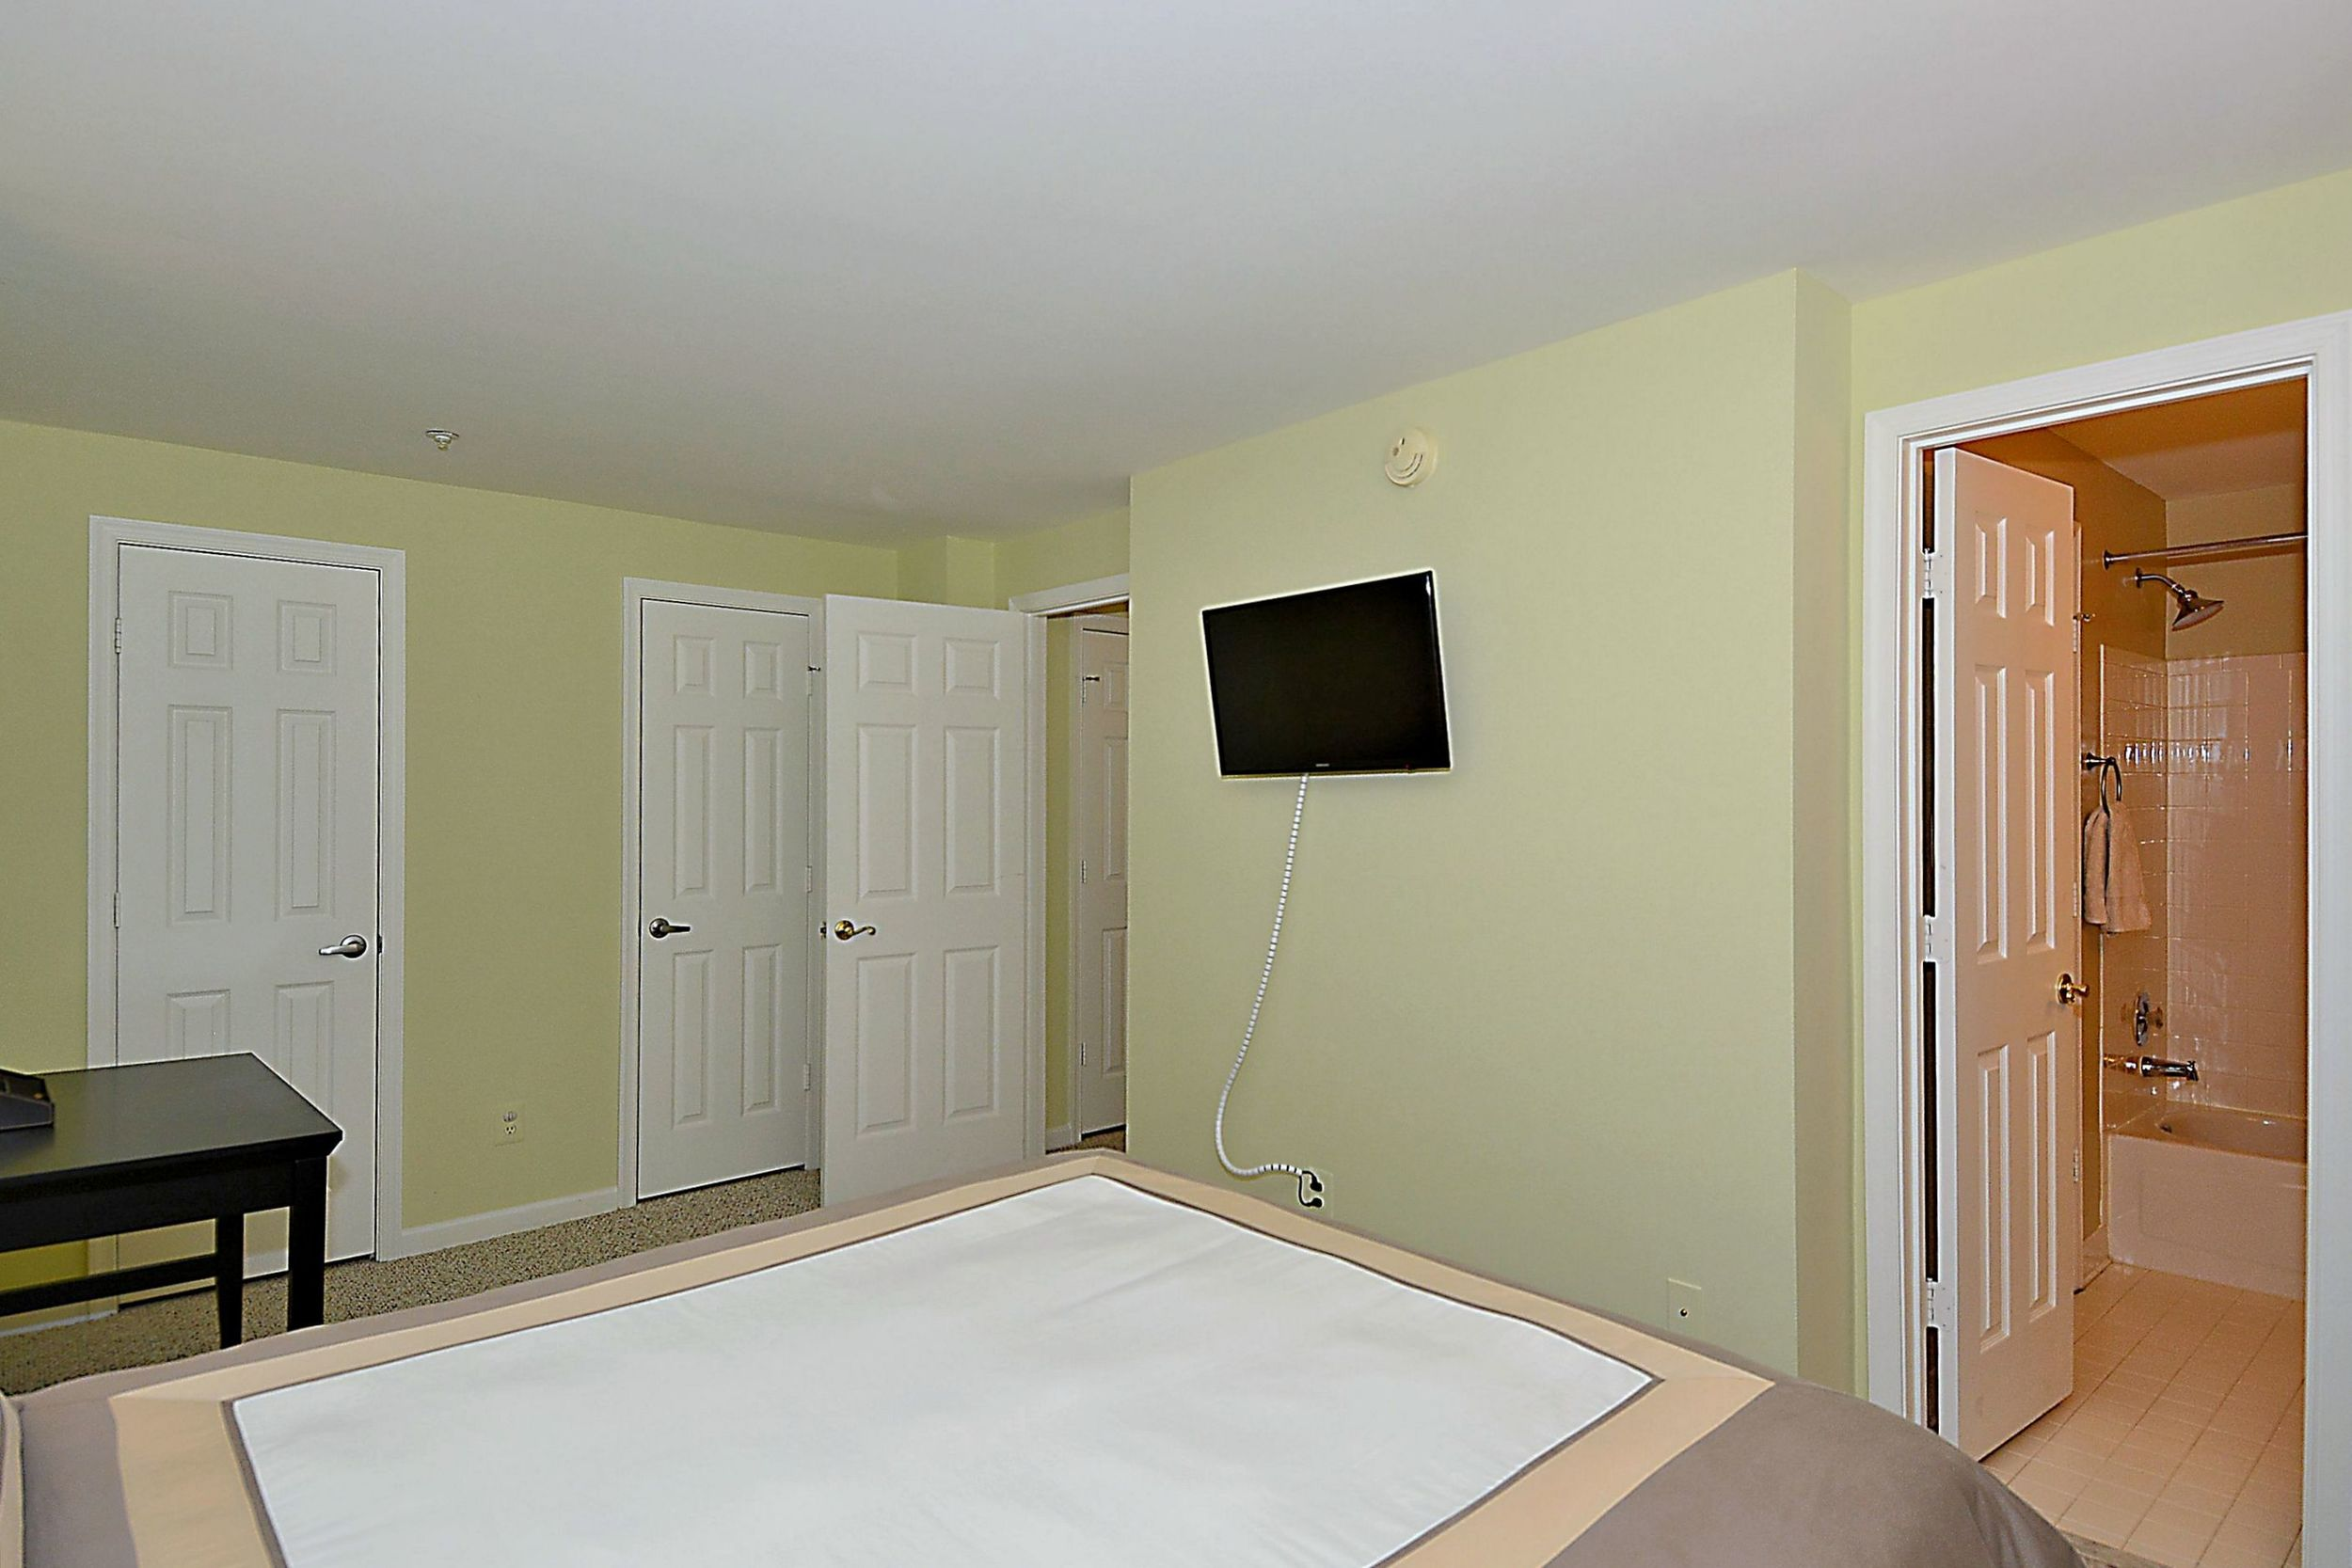 Print_Lower Level-Bedroom_1.JPG